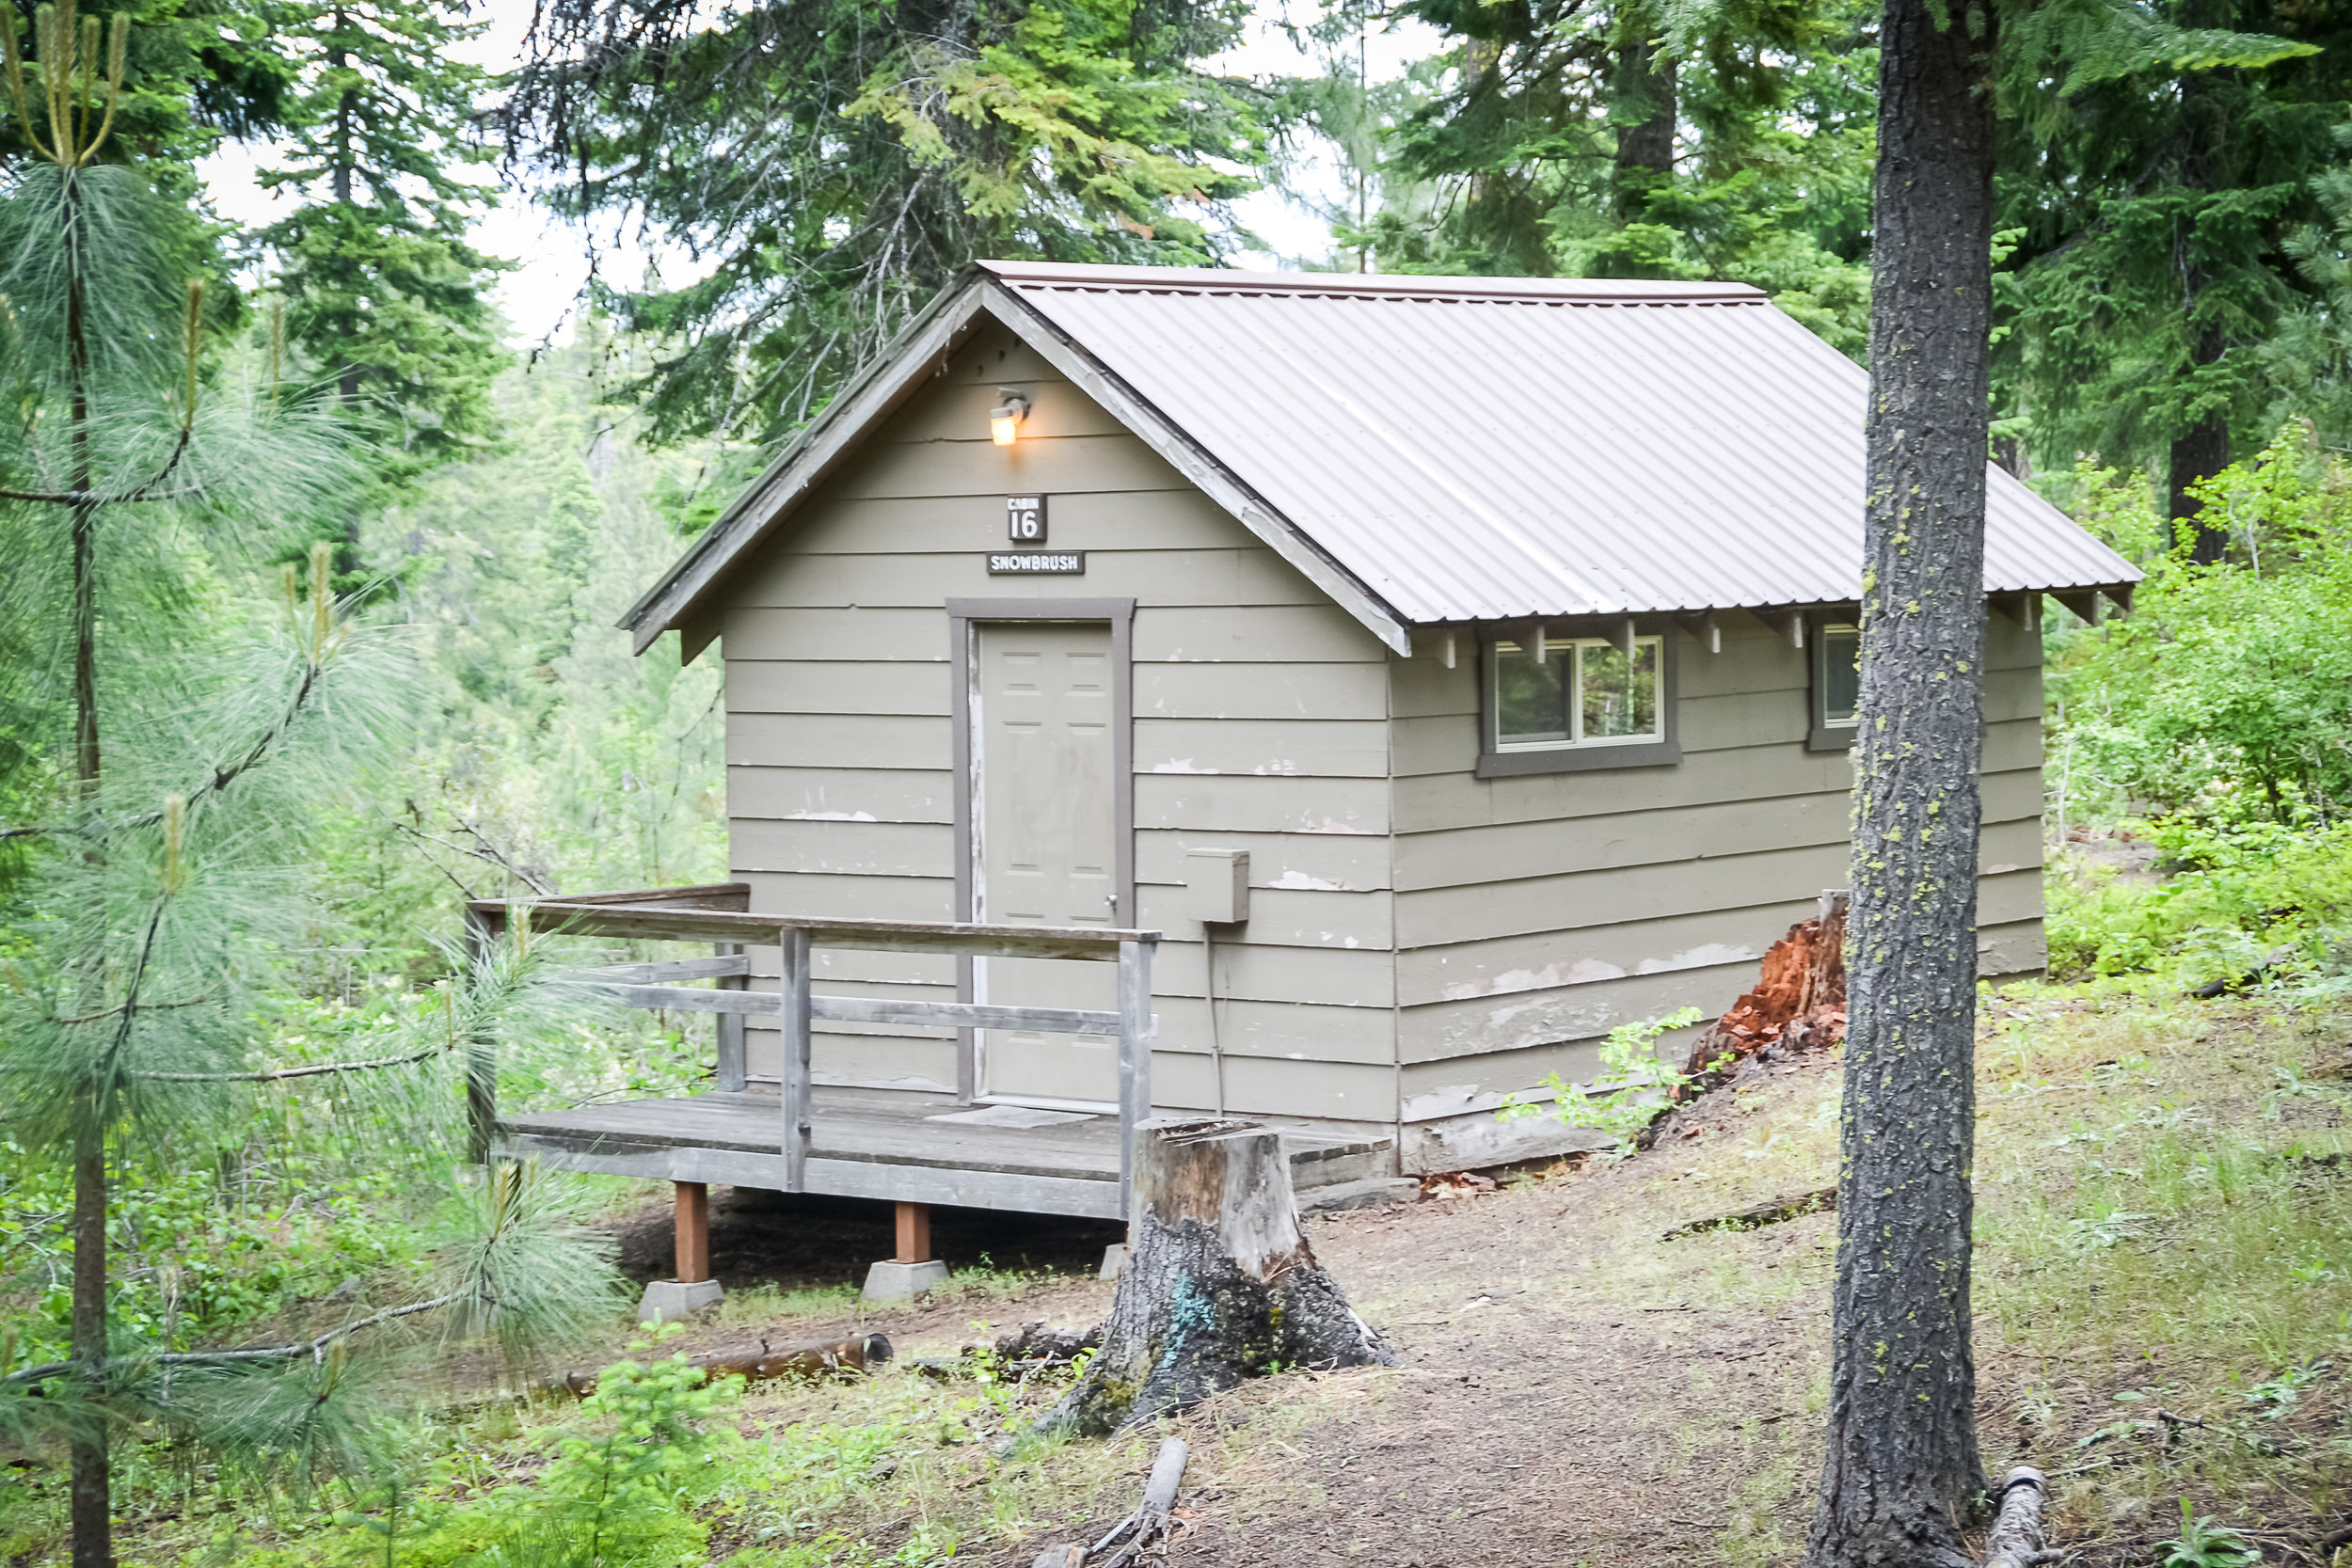 PACKAGE 4 - RUSTIC CABIN  Features: Shower House, Bunk Beds, Space Heater, Sleeps 5 to 8